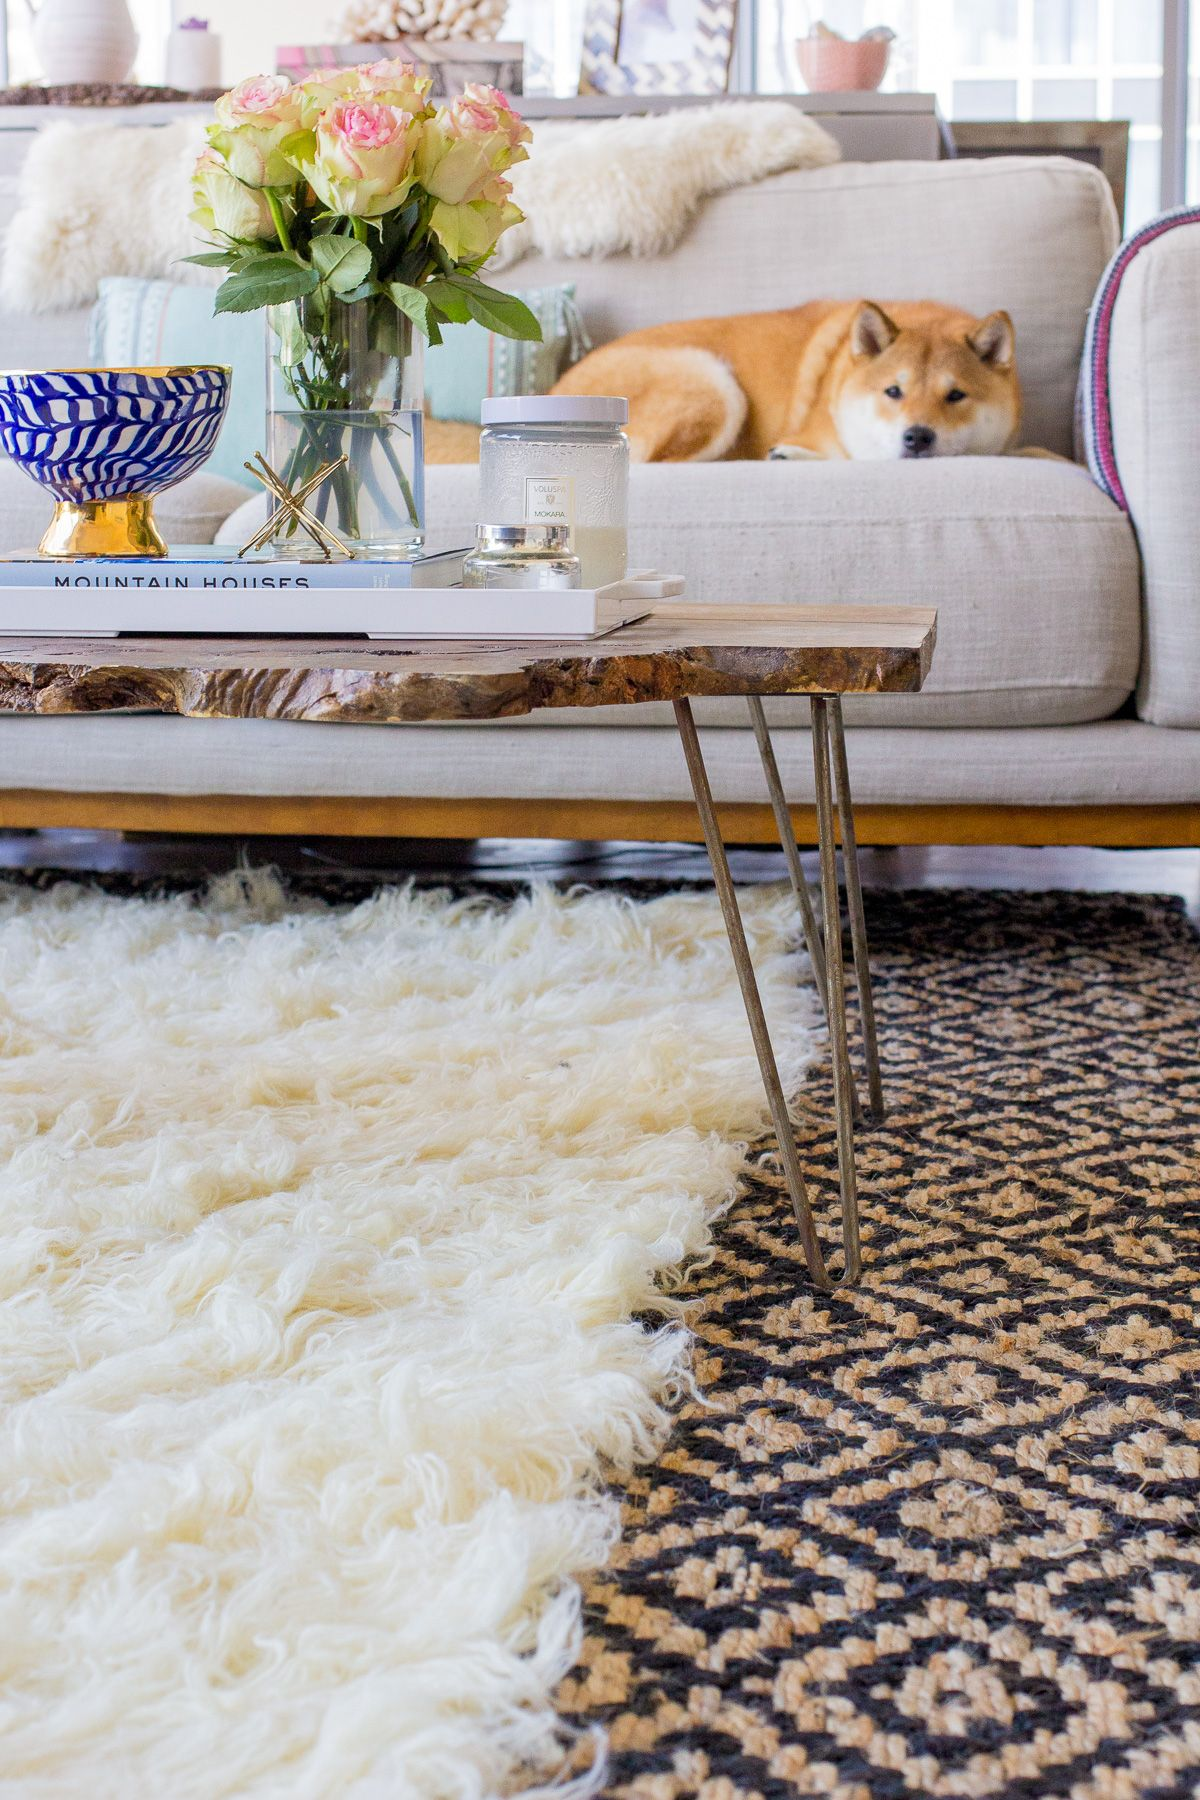 How To Layer Rugs Like A Pro. Teppich VerlegenWarme  FüßeBodenbelagReinigungRenovierungTeppicheEinrichten Und WohnenRaum Wohnzimmer